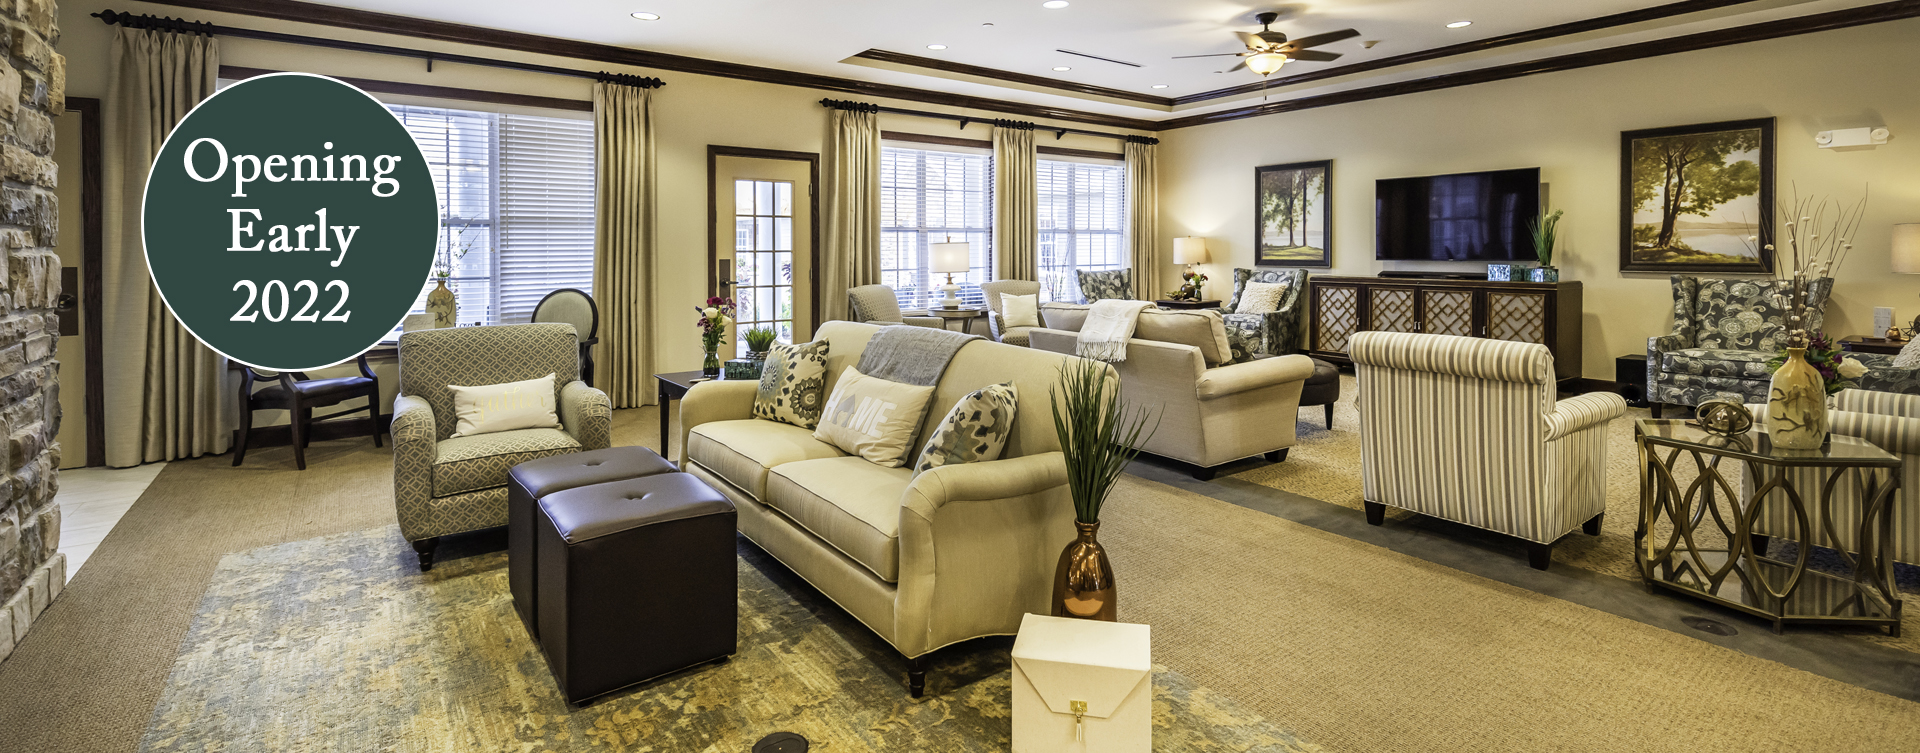 Snooze in your favorite chair in the living room at Bickford of Chesapeake